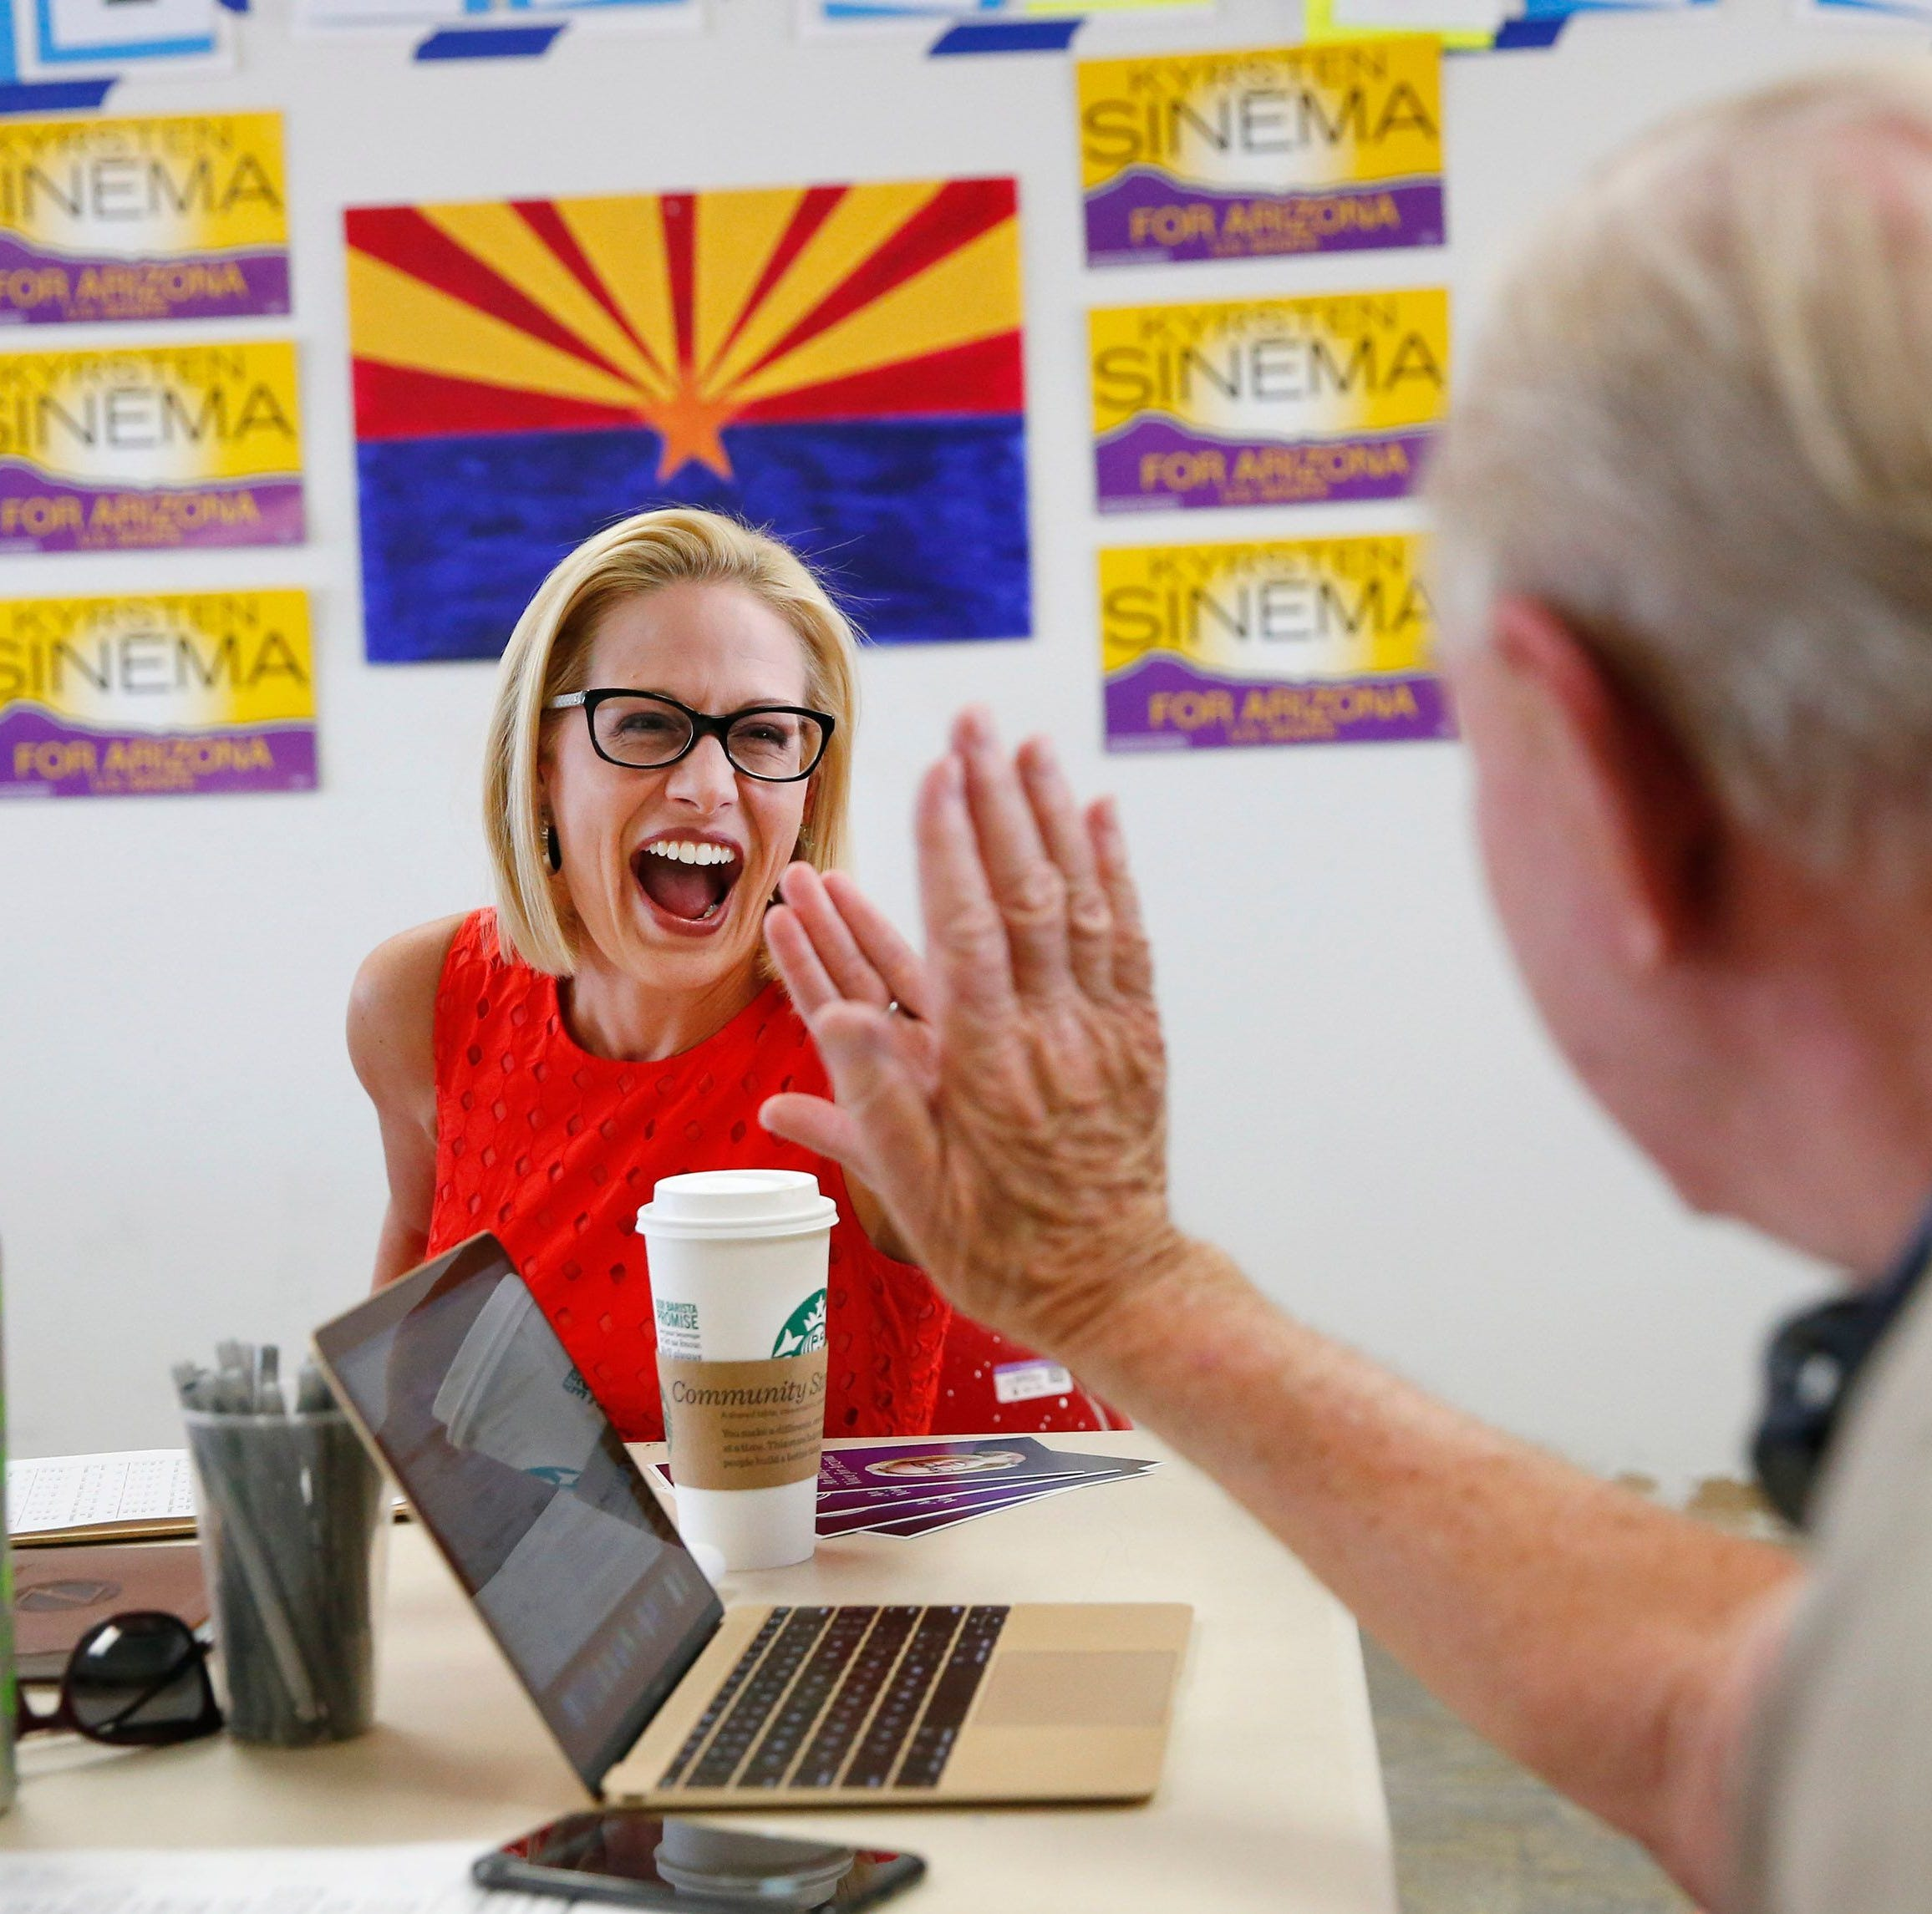 U.S. Rep. Kyrsten Sinema high-fives volunteer Bob Miller in Phoenix Tuesday. U.S. Rep. Kyrsten Sinema high-fives volunteer Bob Miller at her field office in Phoenix Aug. 28. 2018. Sinema is vying for the Democratic nomination for the open U.S. Senate seat.